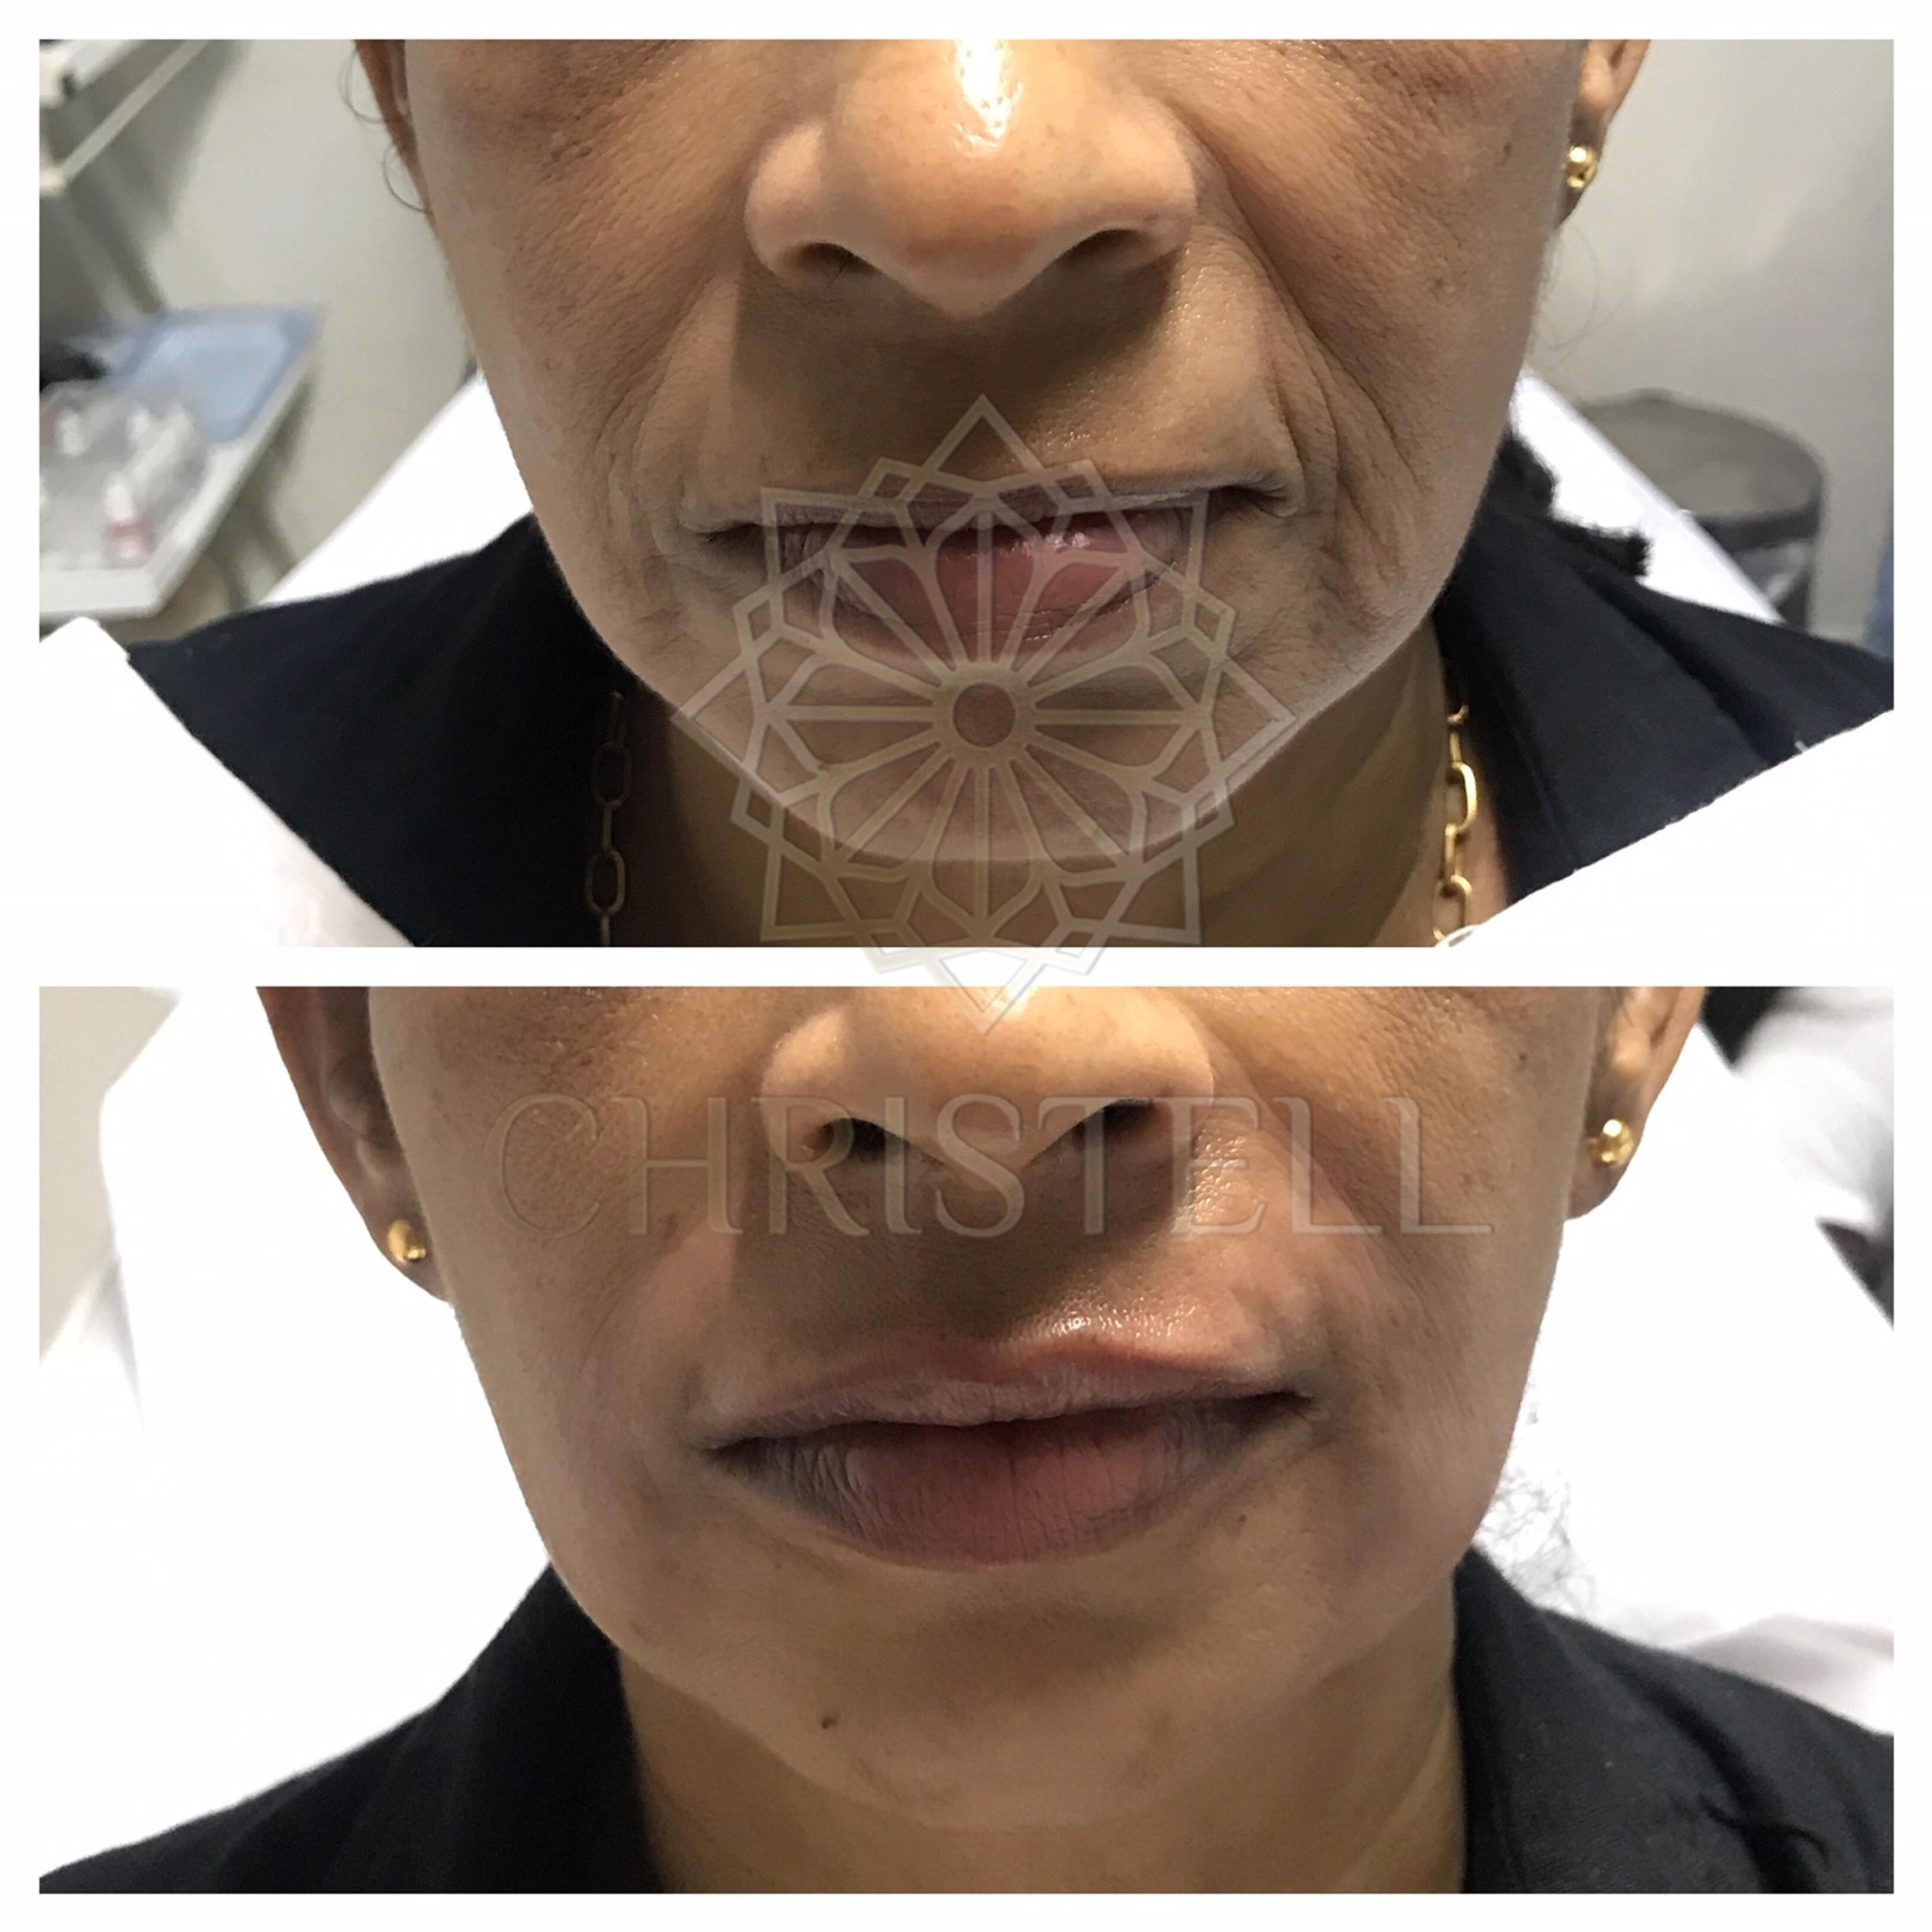 IMG_1905_wm-2 Dermal Fillers (Cheeks,Eyes,Lips, Face)